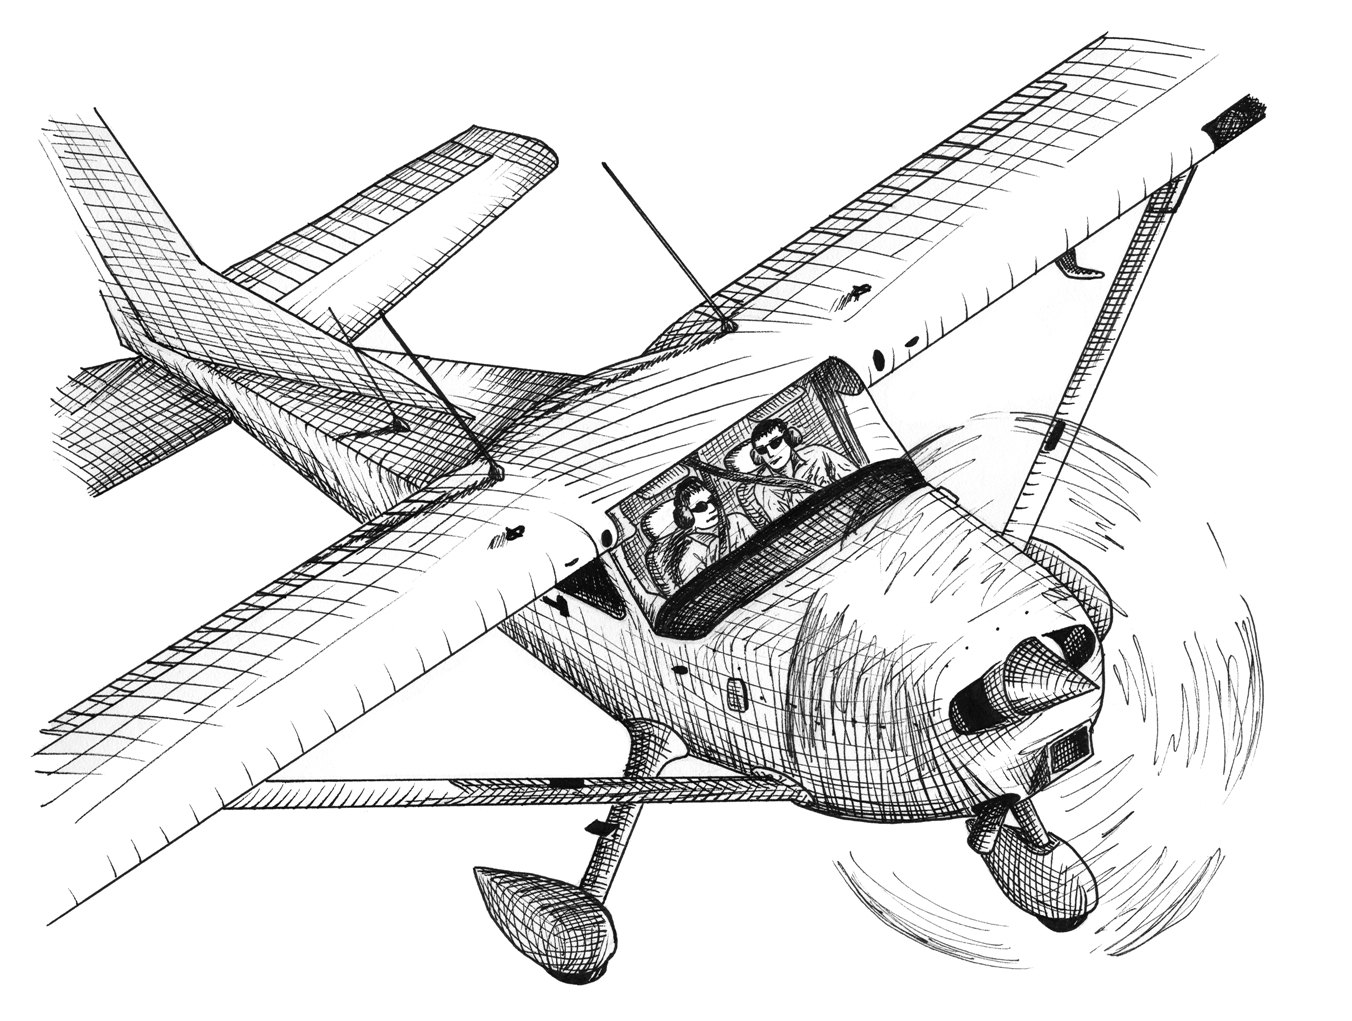 Easy Plane Crash Drawing By Ocv9 On Clipart Library